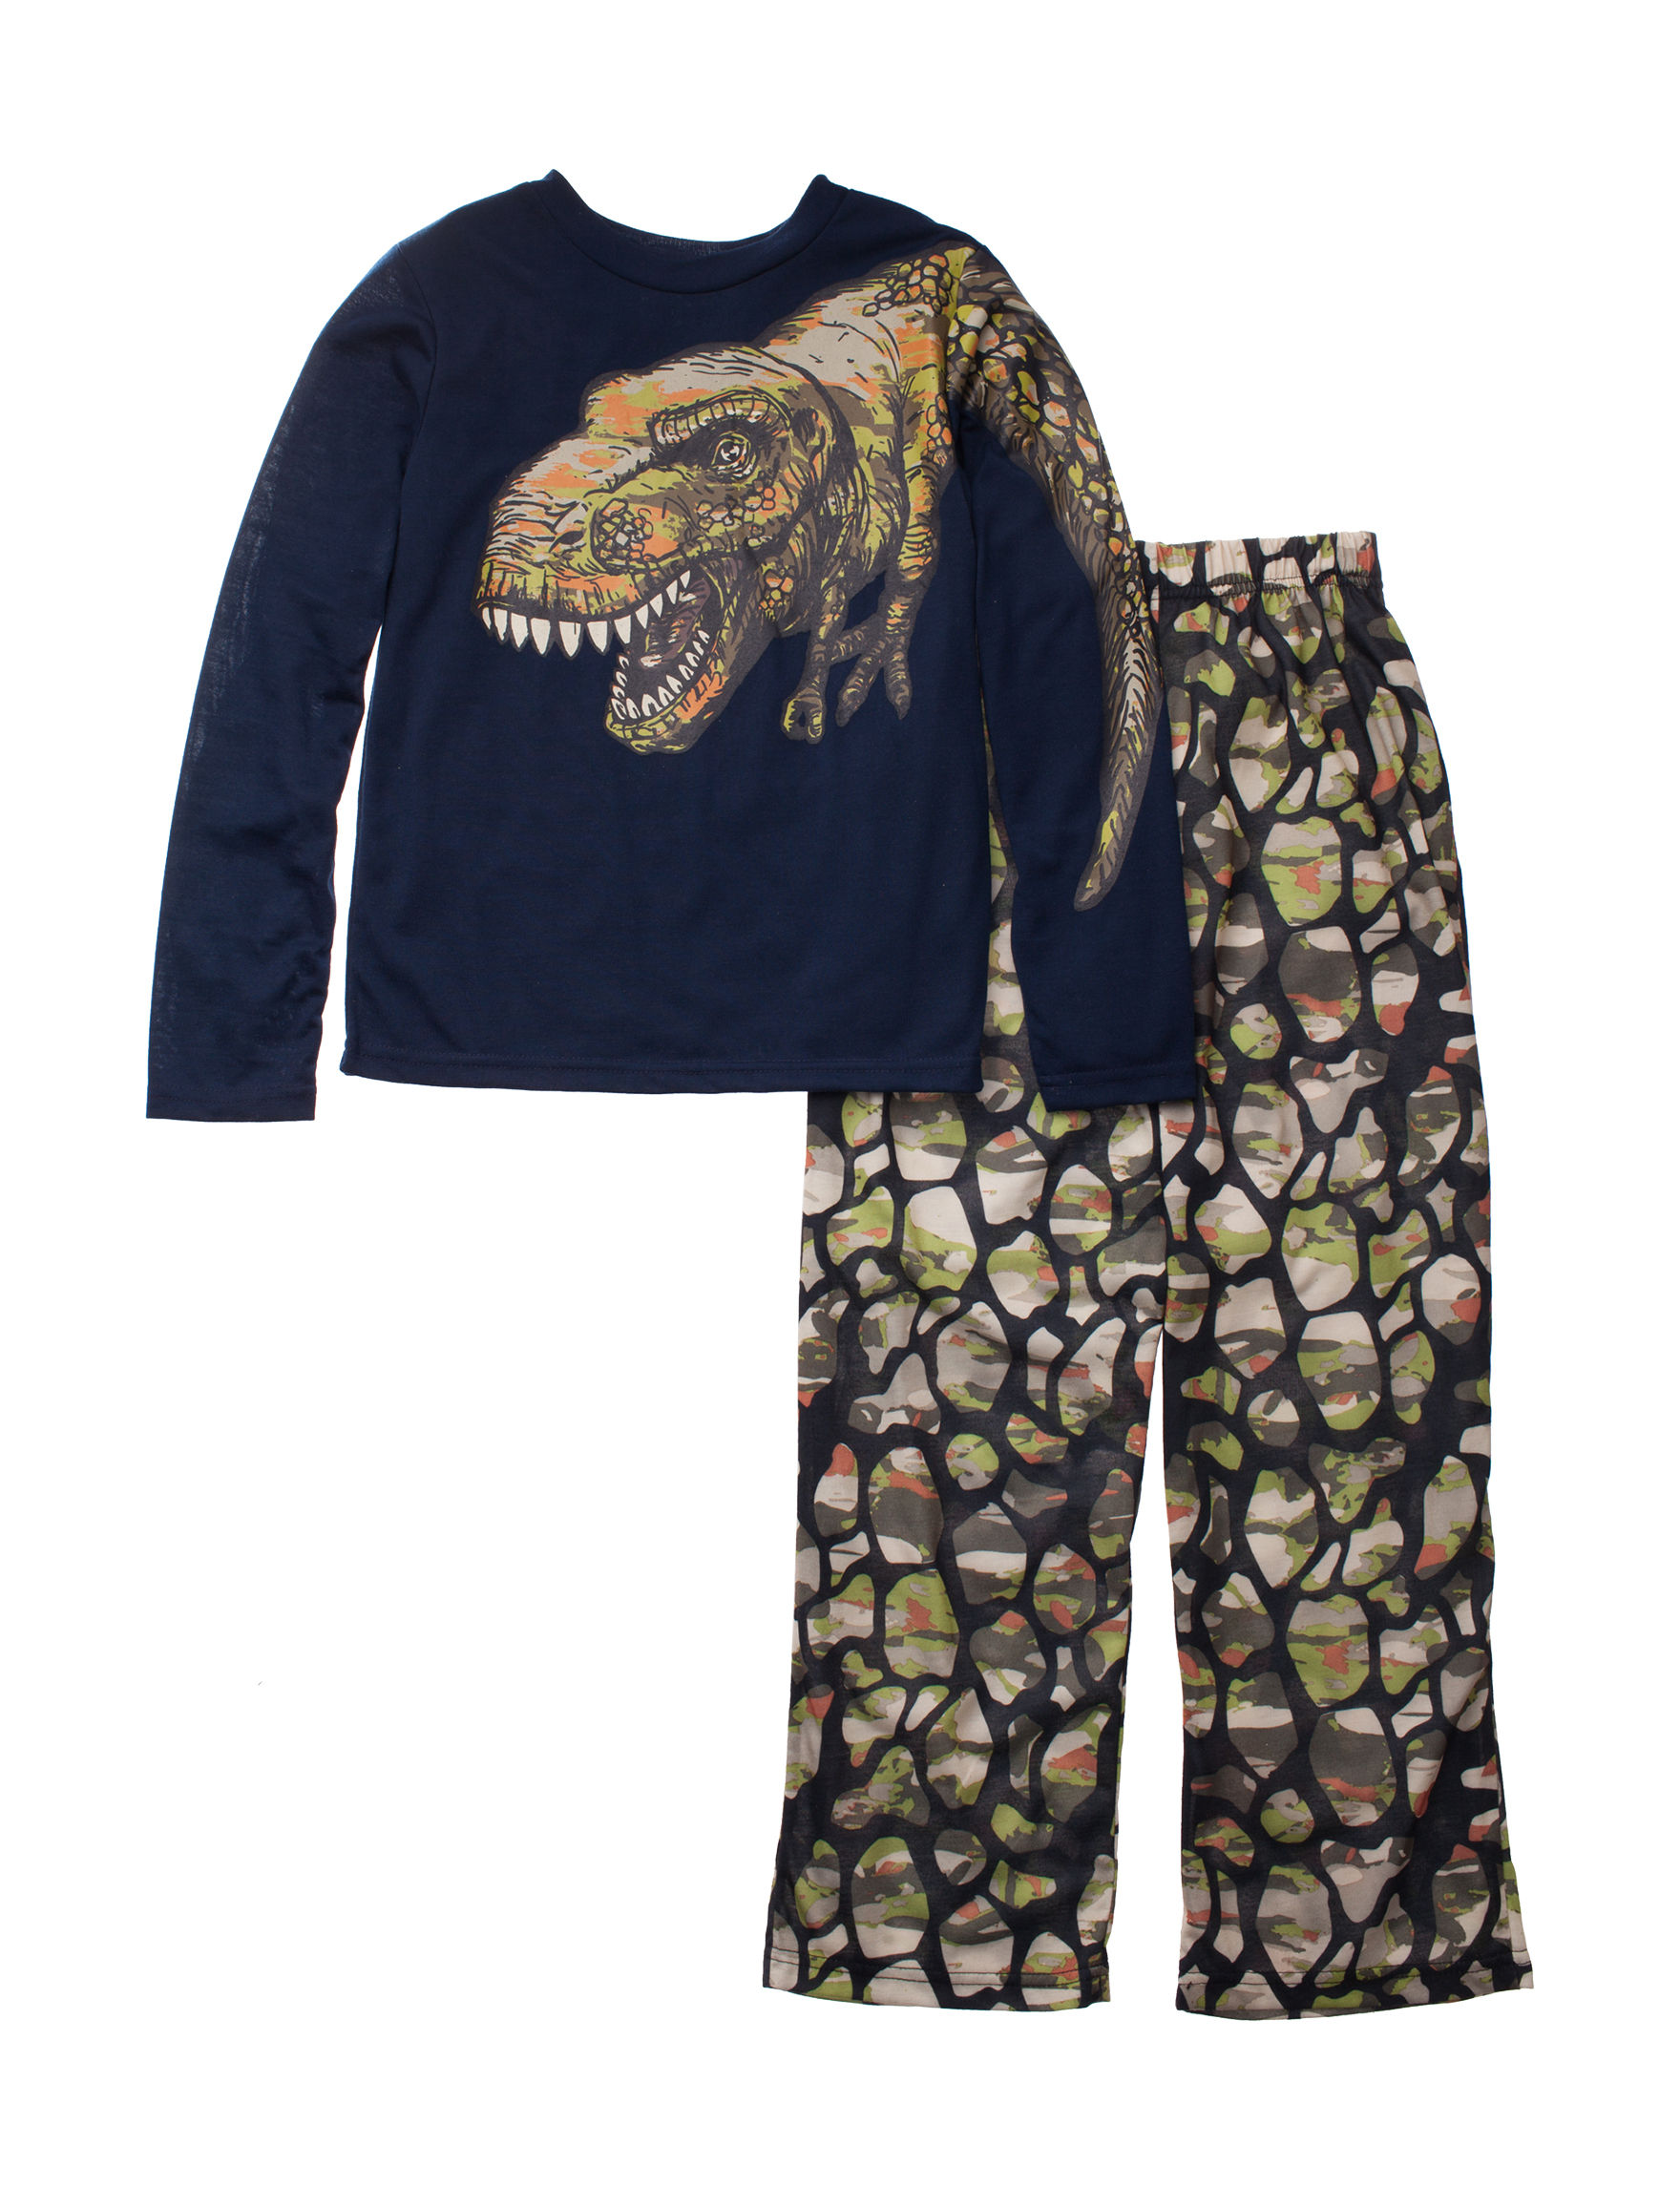 Komar Kids Navy / Green Pajama Sets